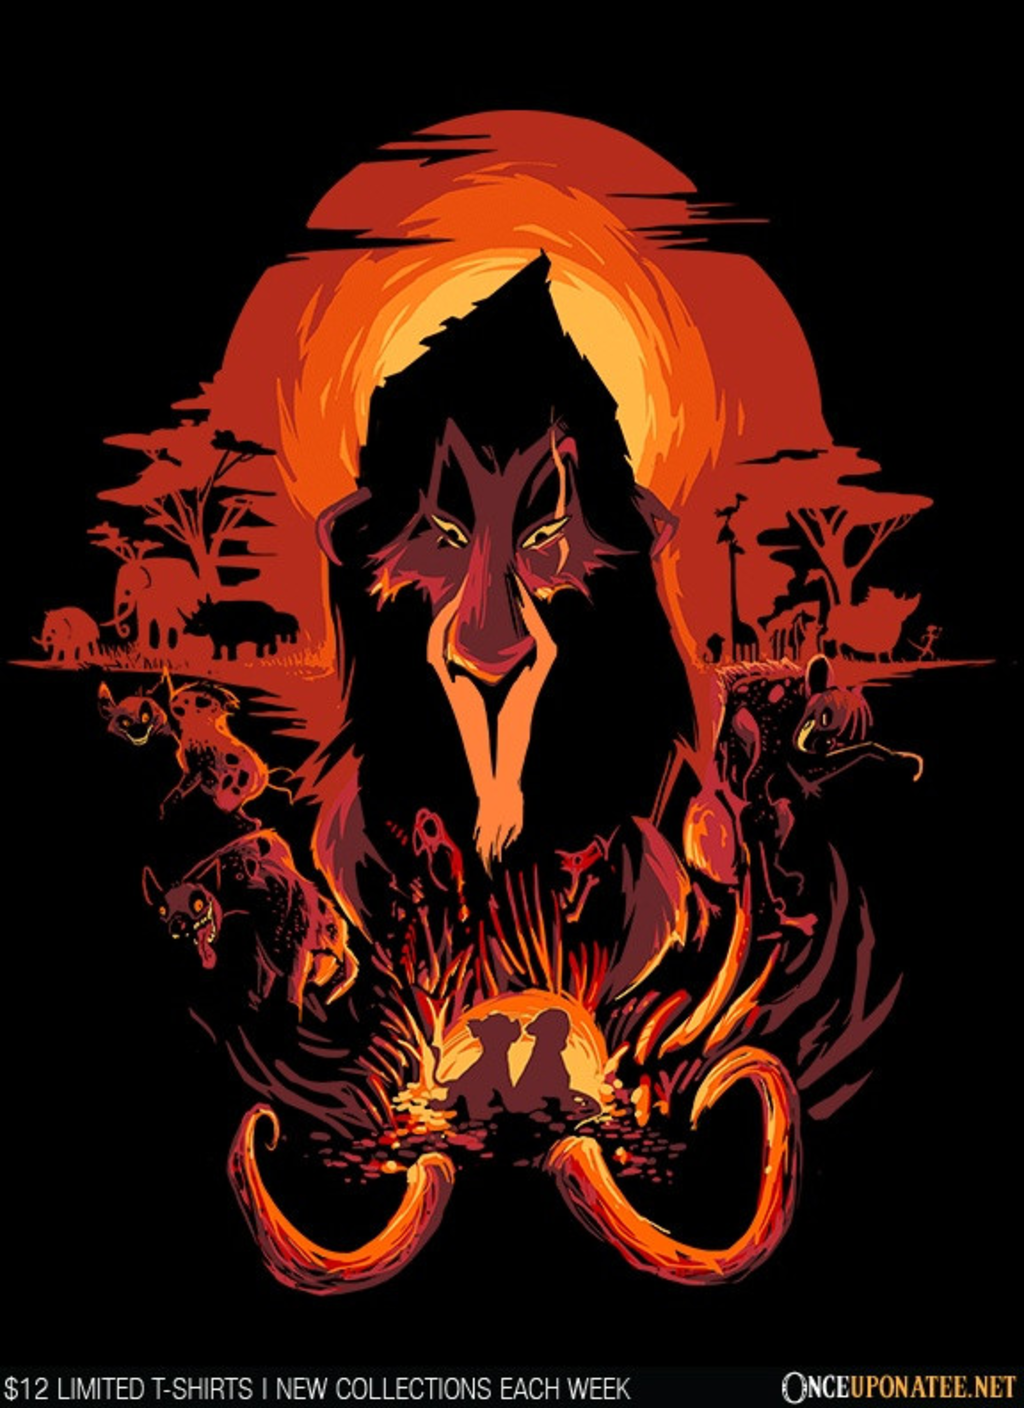 Once Upon a Tee: The King is Dead